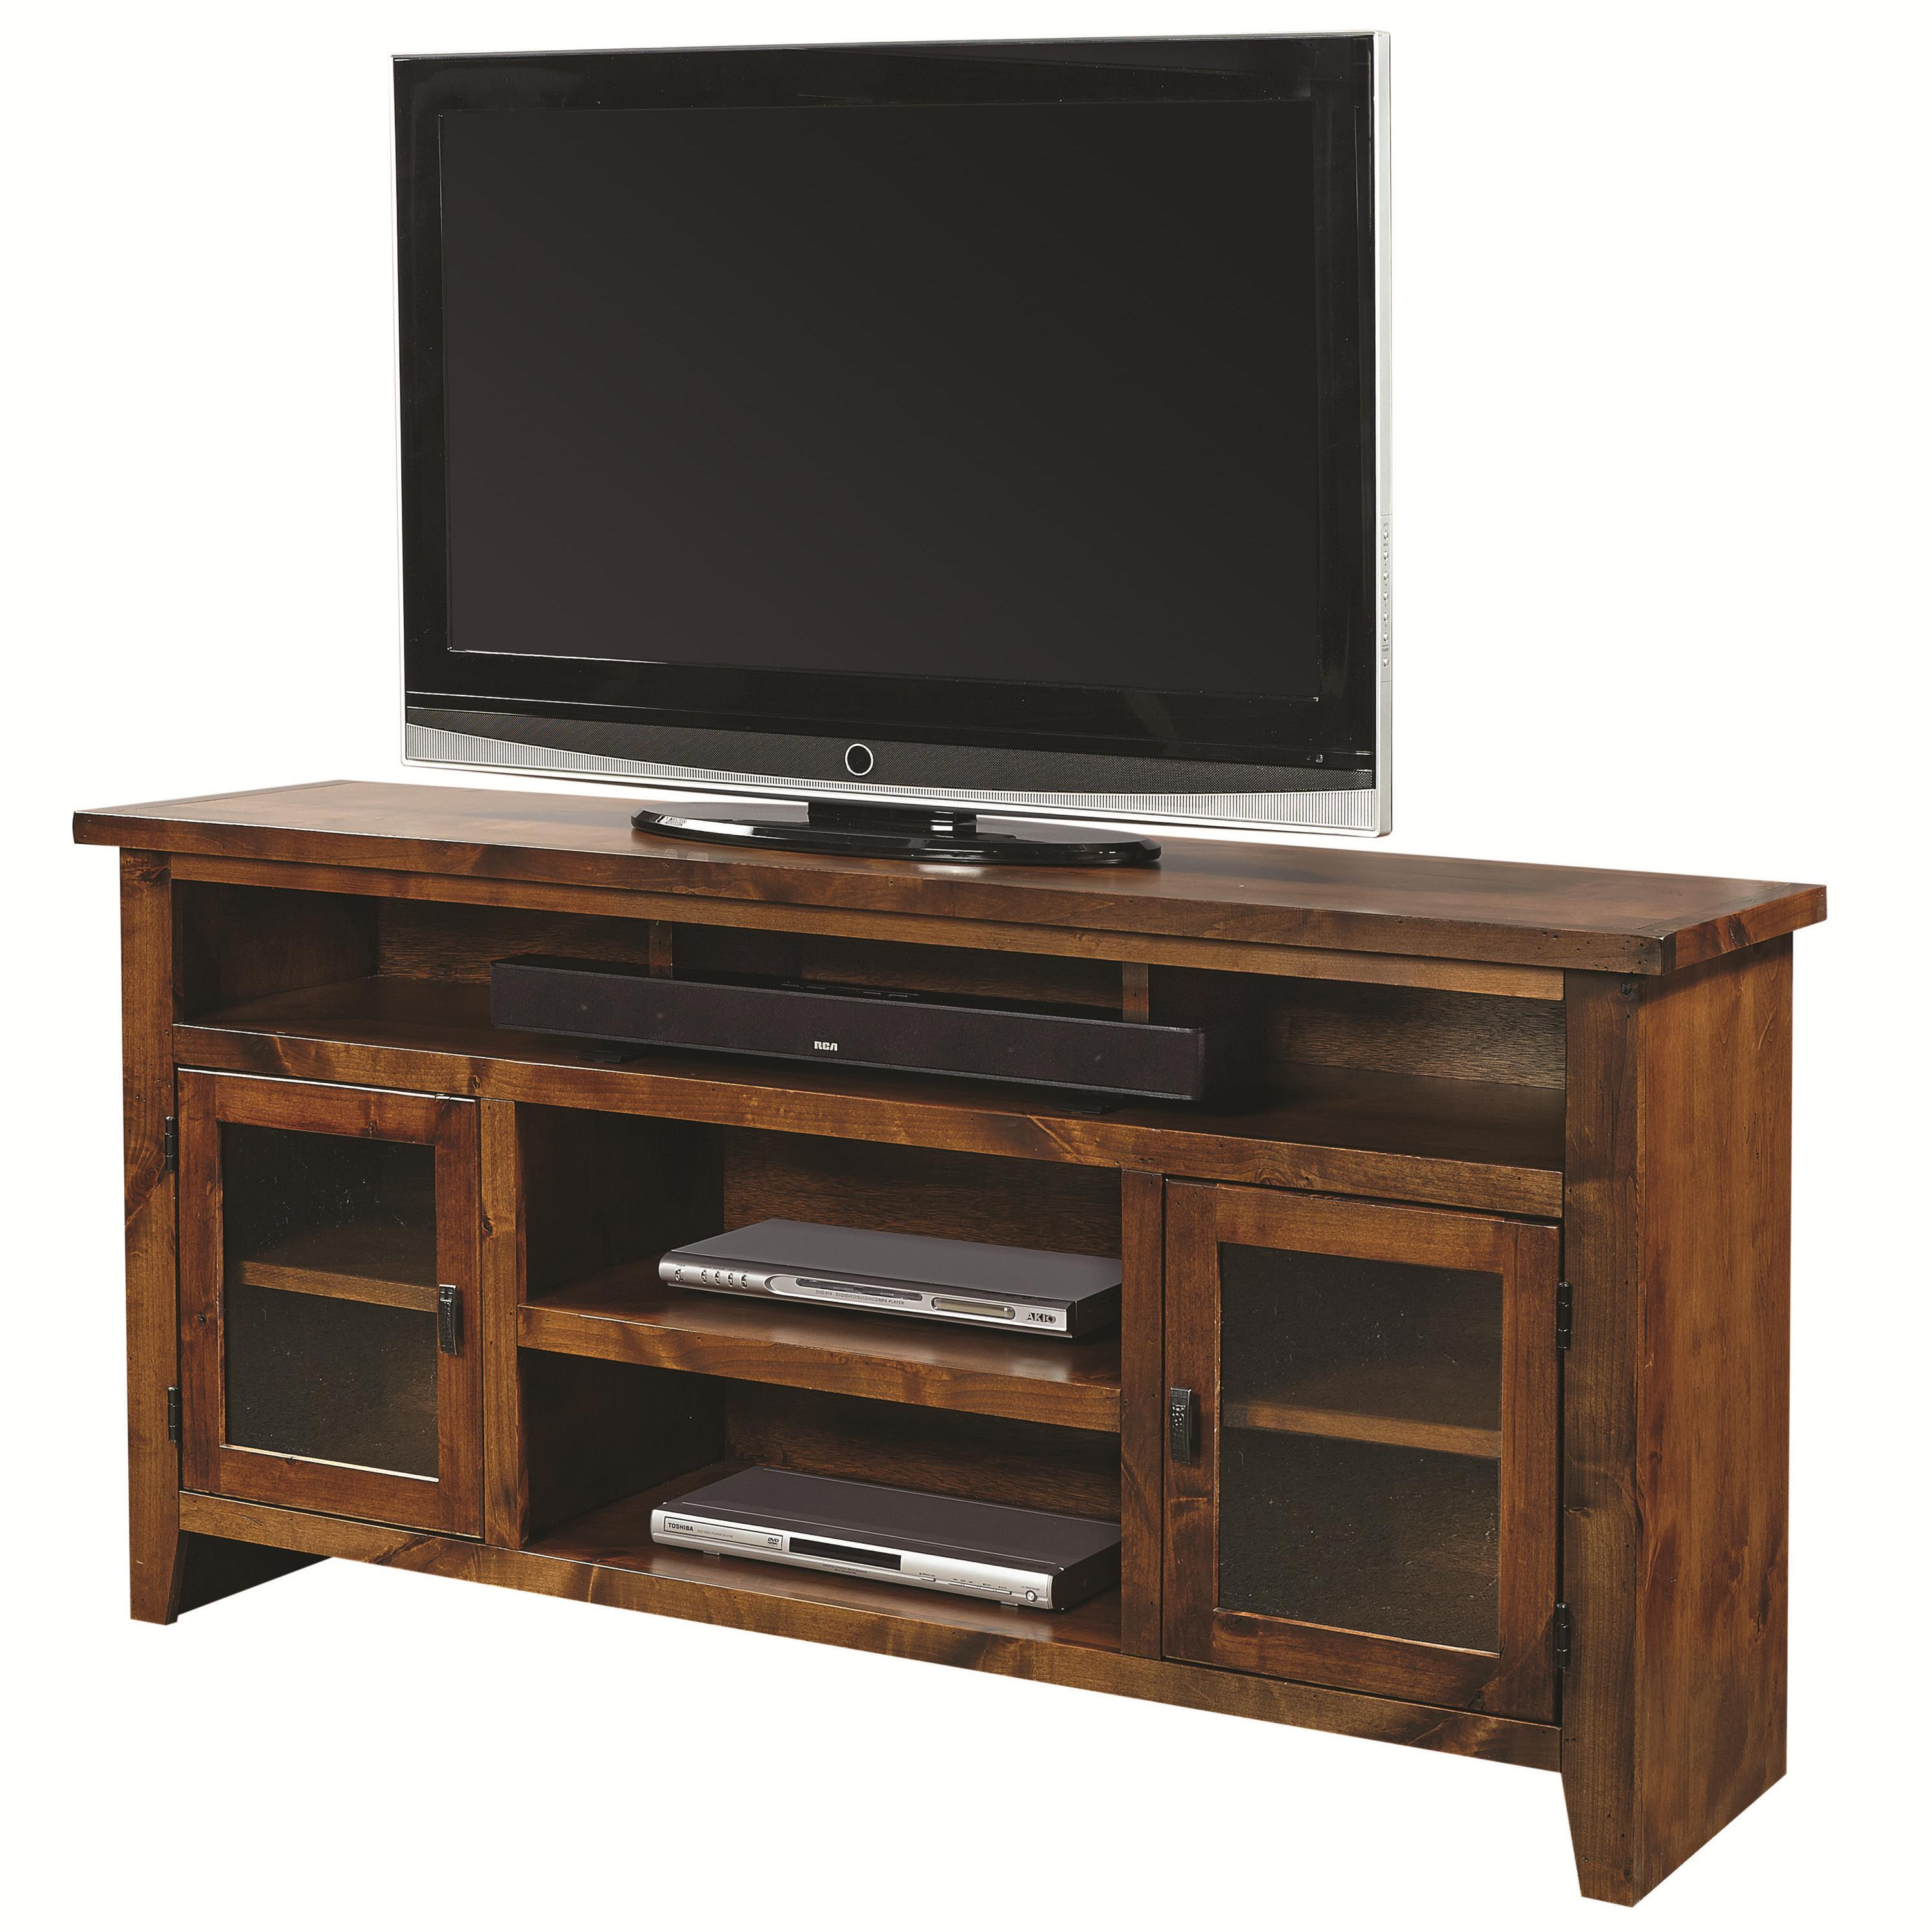 Aspenhome alder grove 65 console with 2 glass doors for Furniture 65